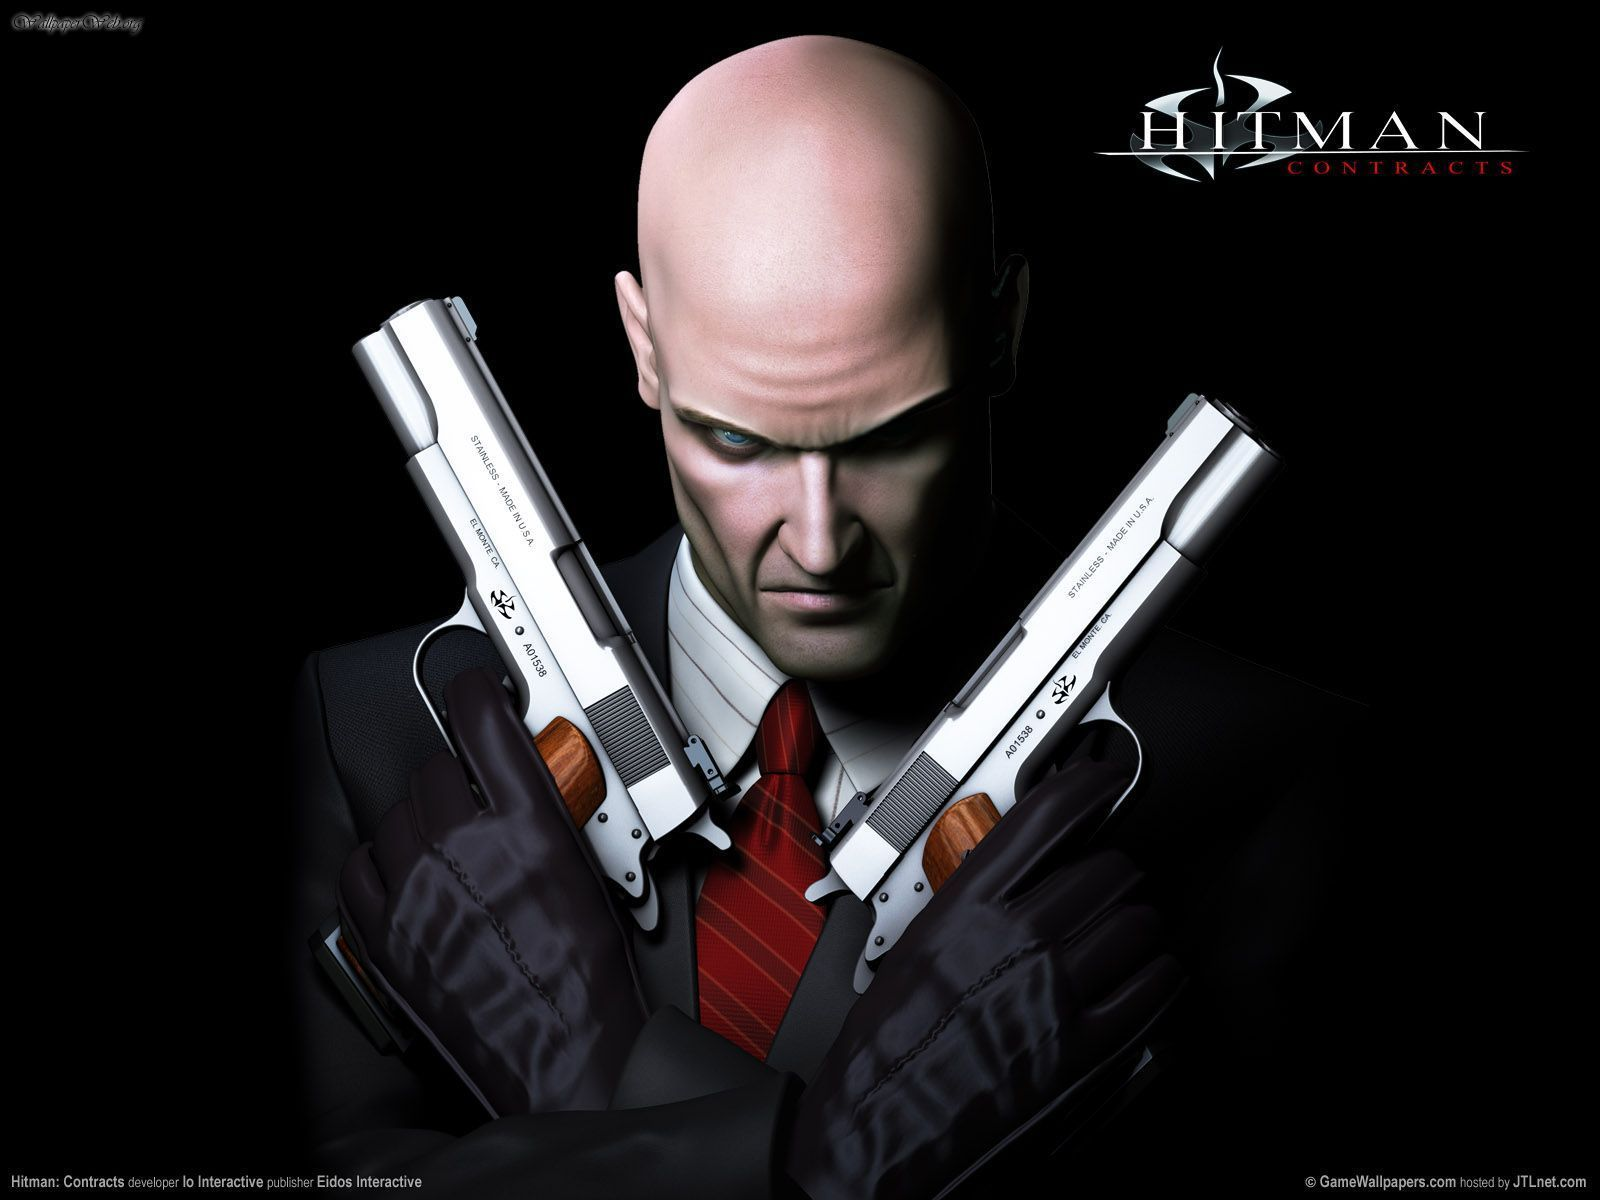 View Hitman Contracts in full screen 1600x1200